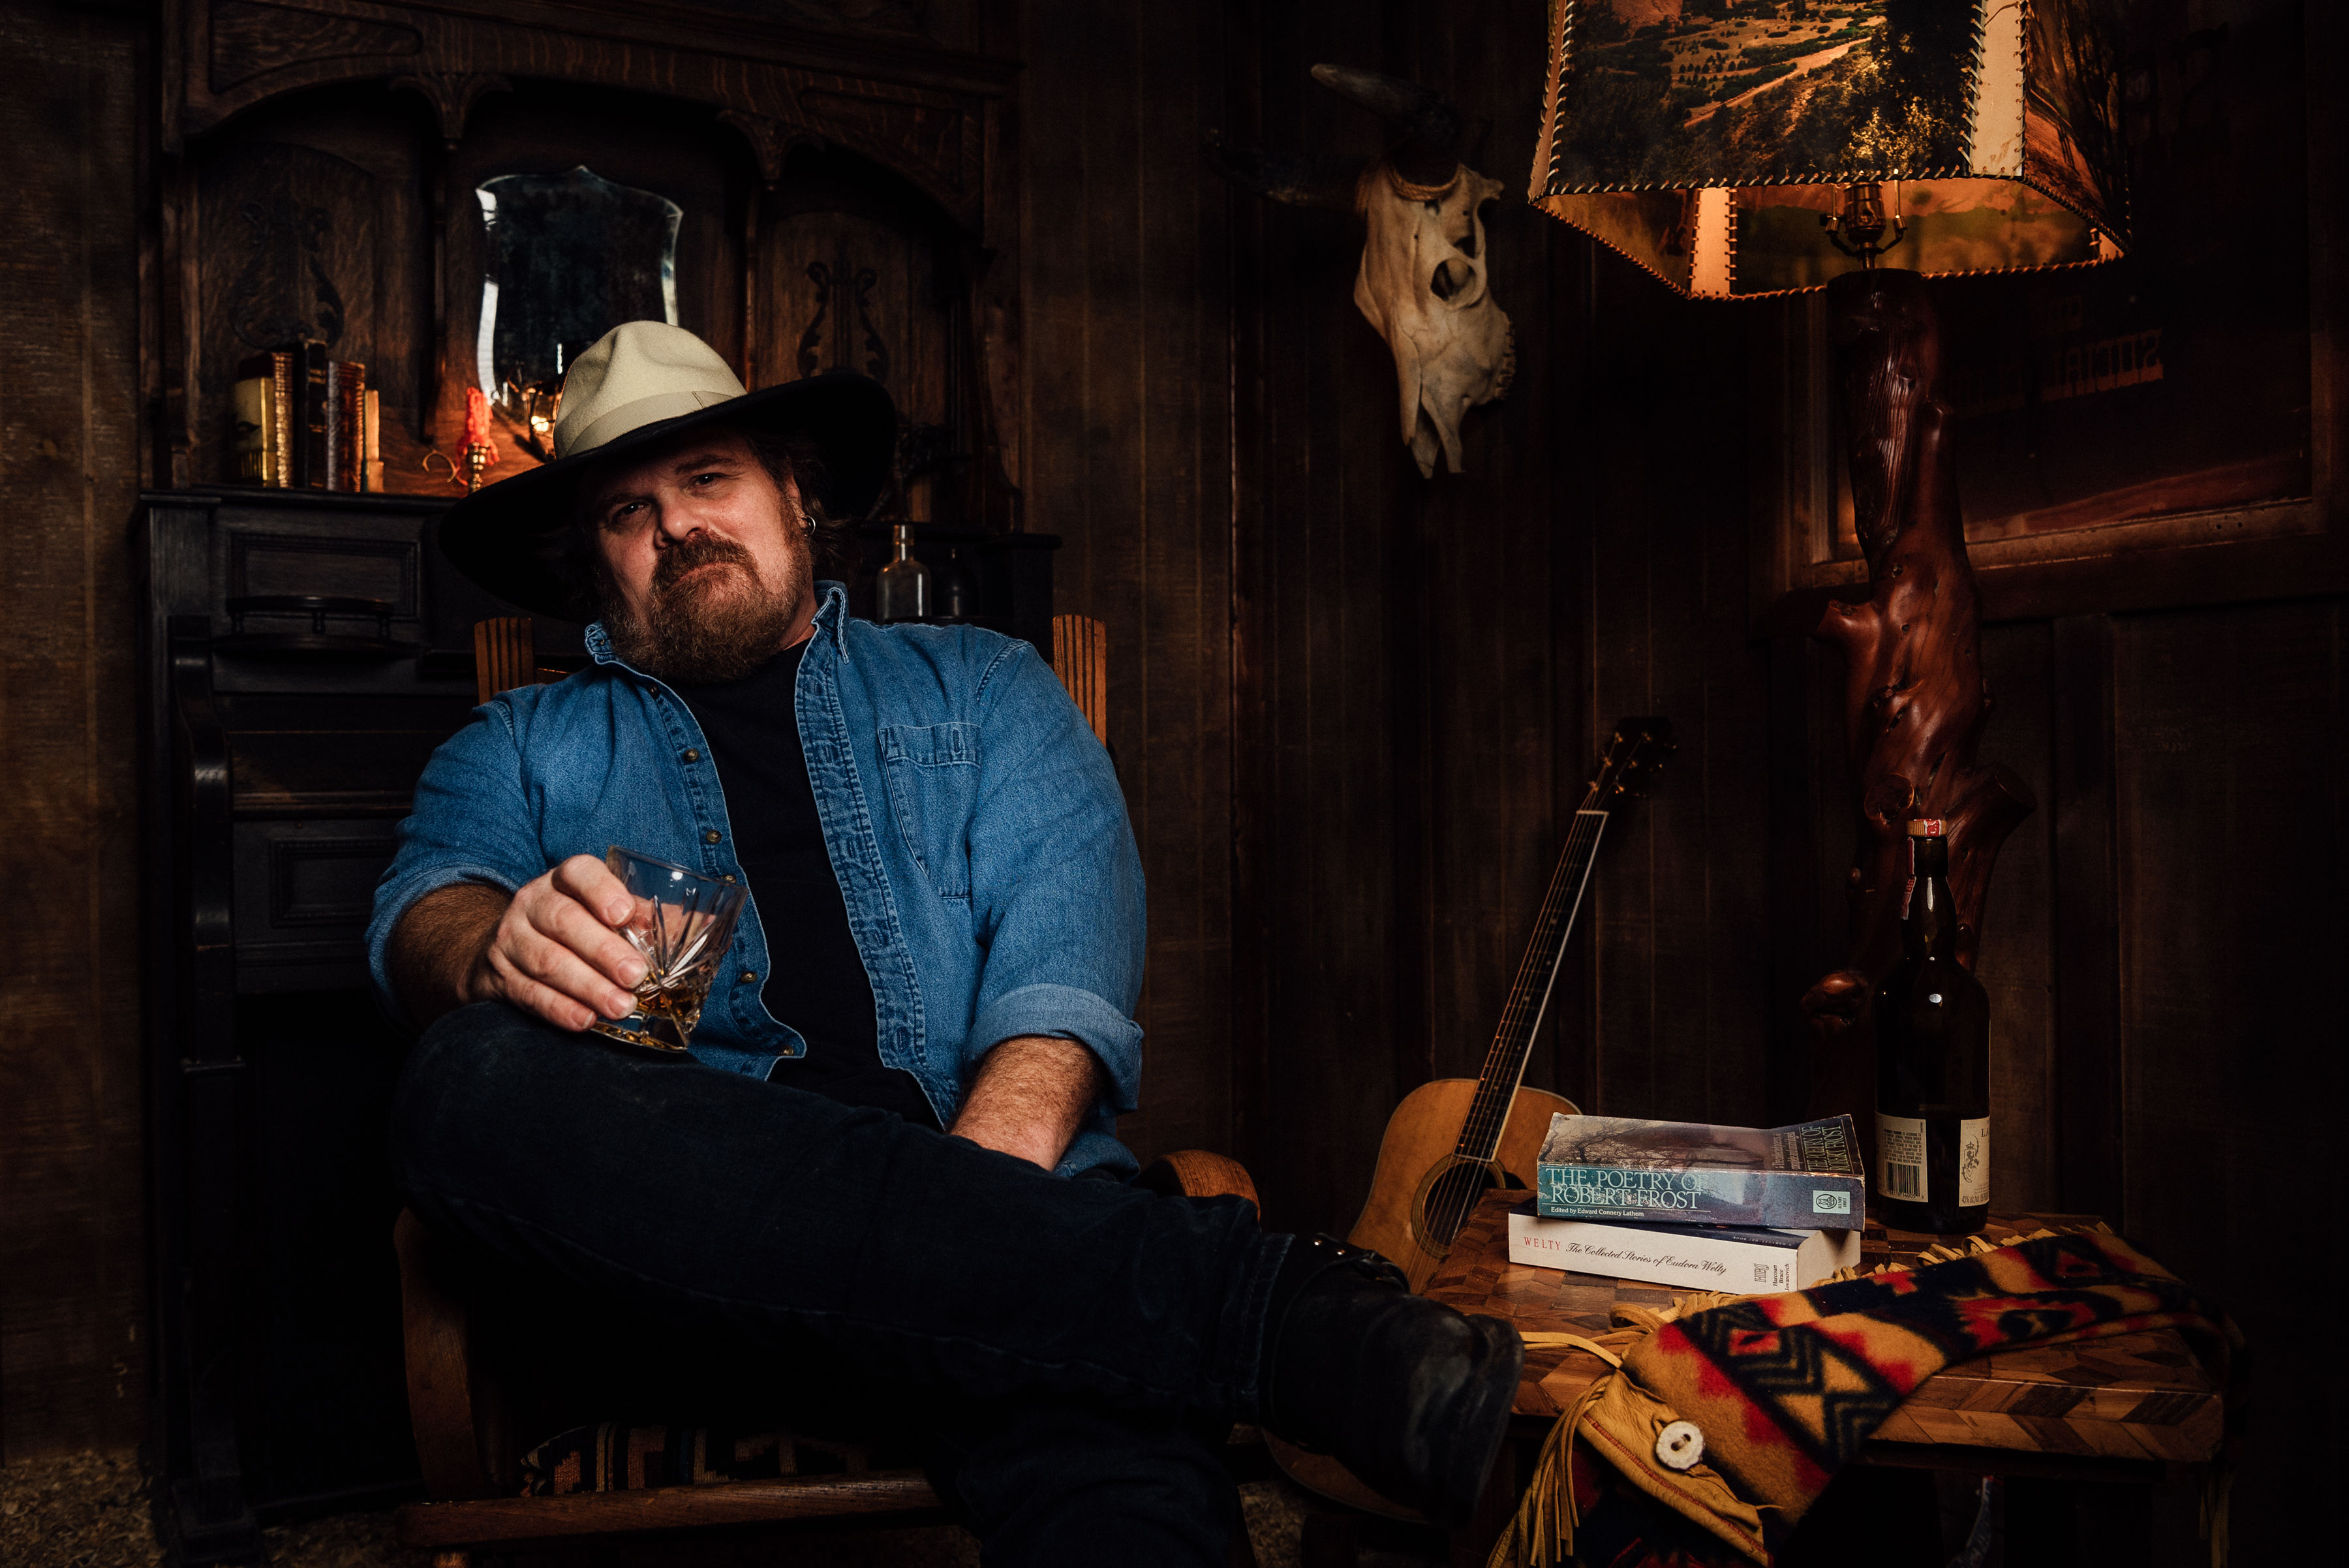 Nashville singer-songwriter, Mark Elliott releases The Sons of Starmount a book about childhood innocence and adventure